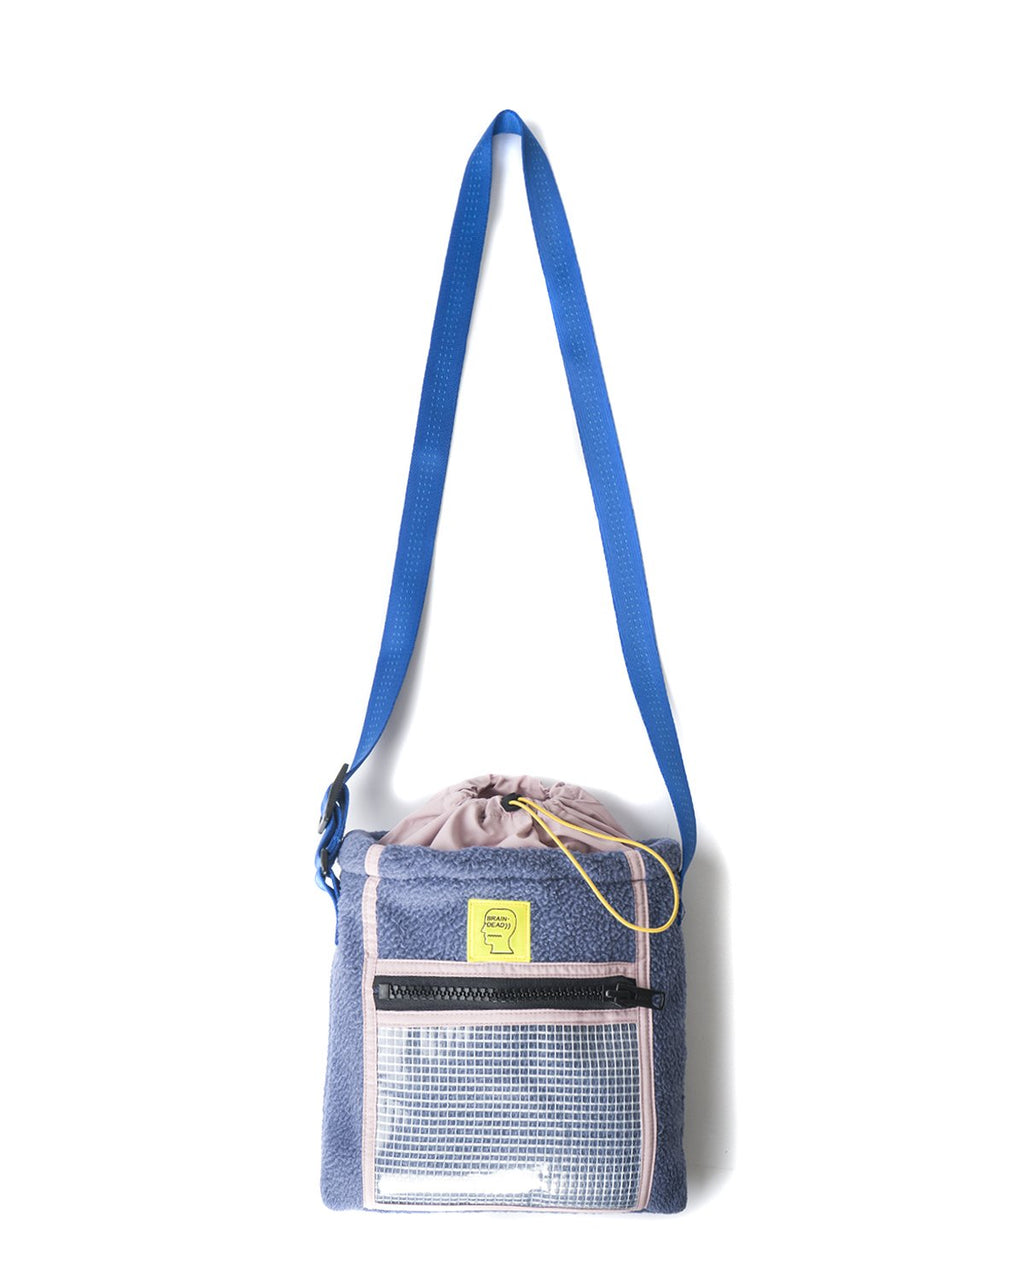 RUSH HOUR TOTE BAG - BLUE/PINK